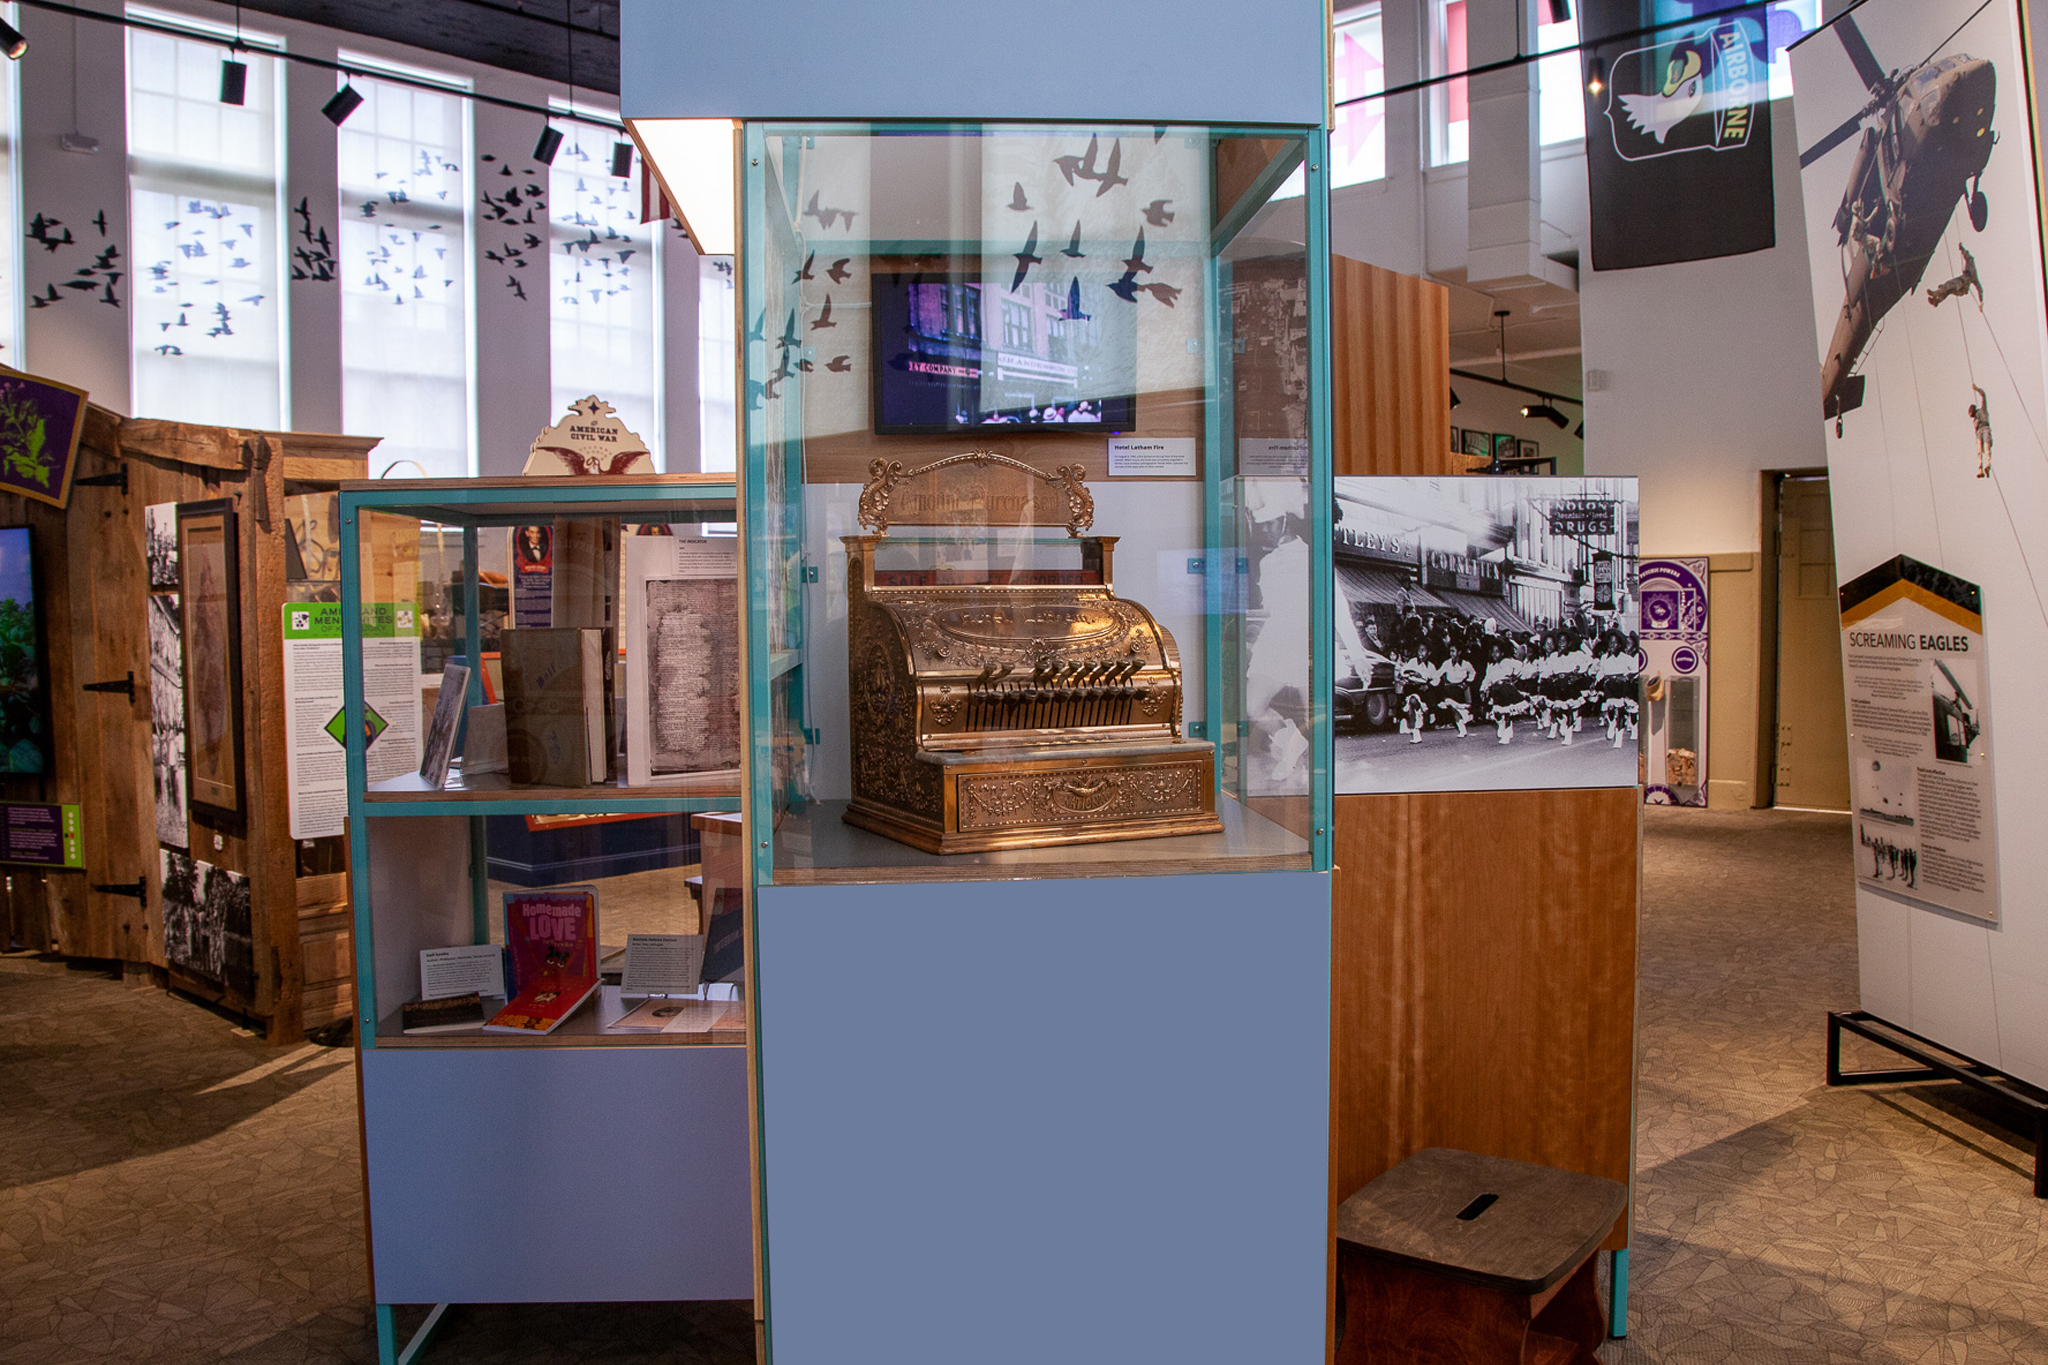 Hoptown History displays objects and artifacts from Hopkinsville Kentucky.